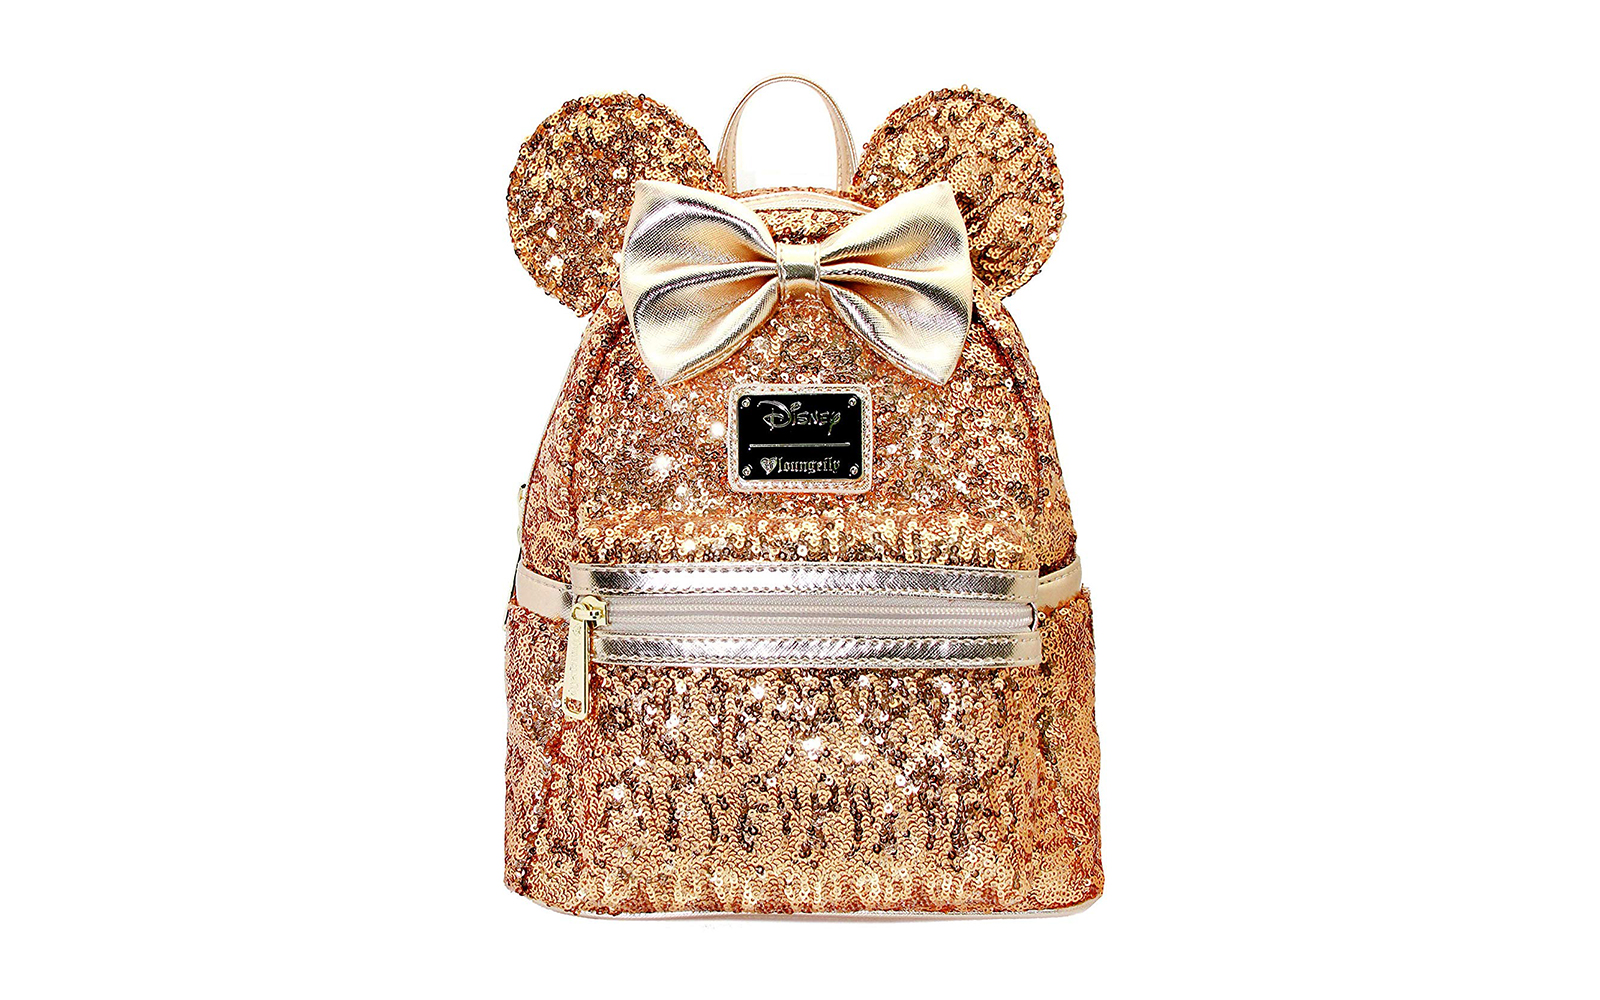 Loungefly x Disney Sequin Minnie Mouse Backpack